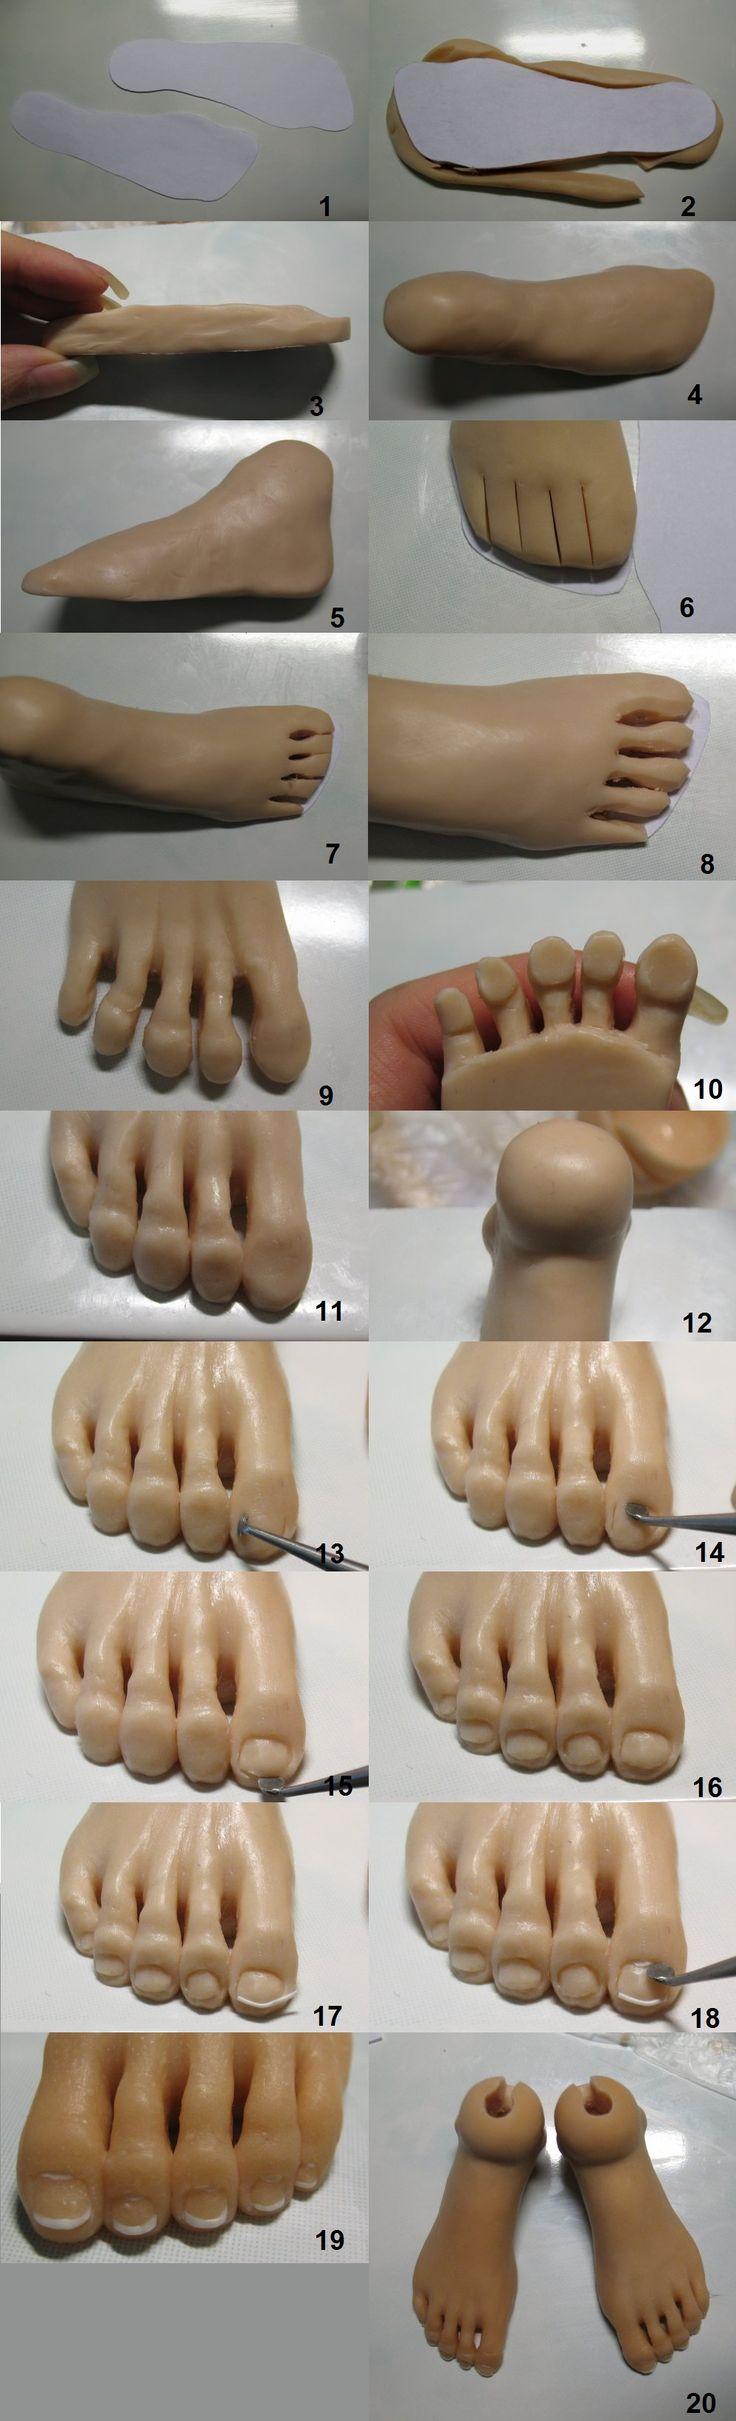 clay foot tutorial from a thread at bjdclub.ru I combined the images to make one tutorial.